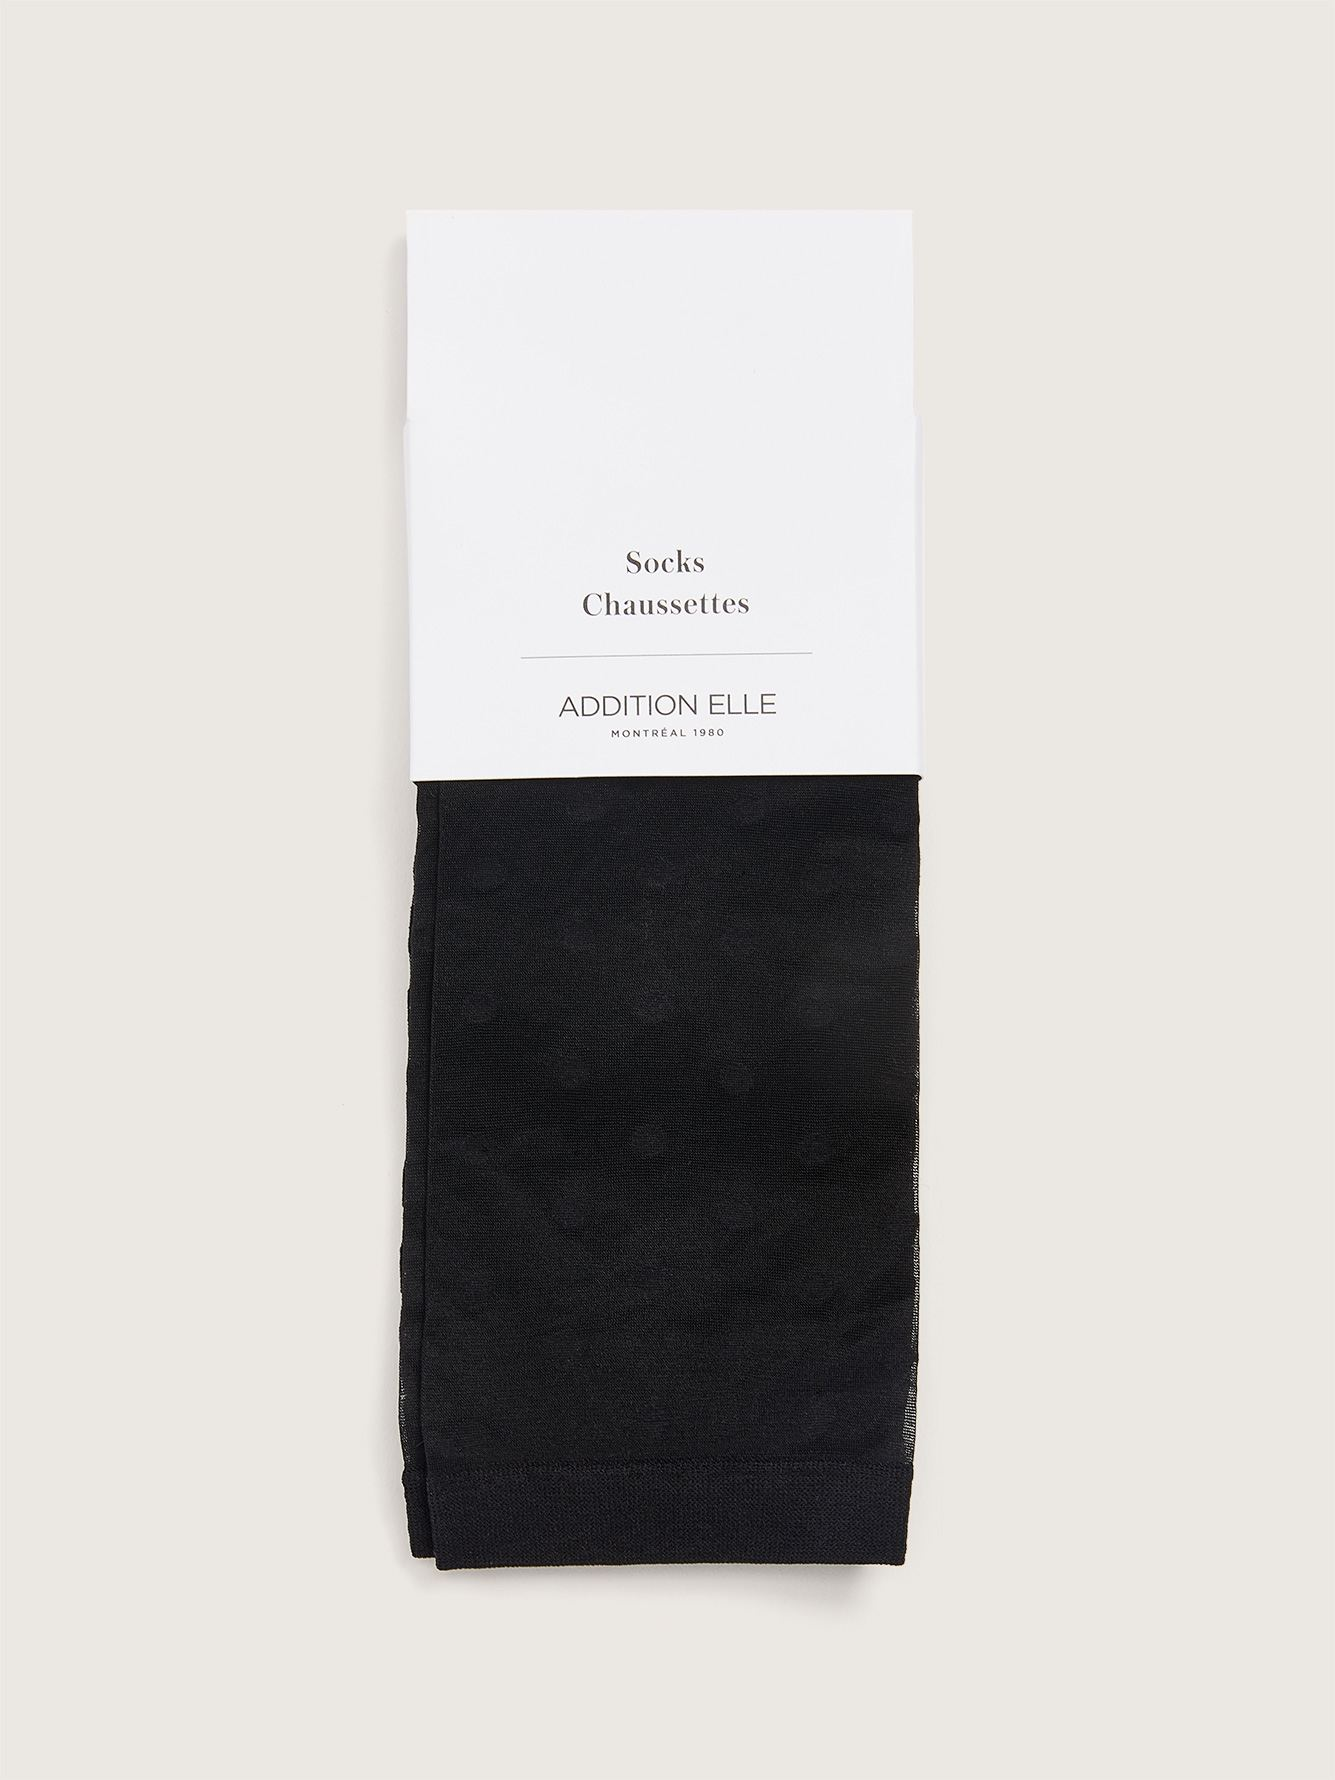 2 Pairs of Sheer Striped & Dotted Socks - Addition Elle